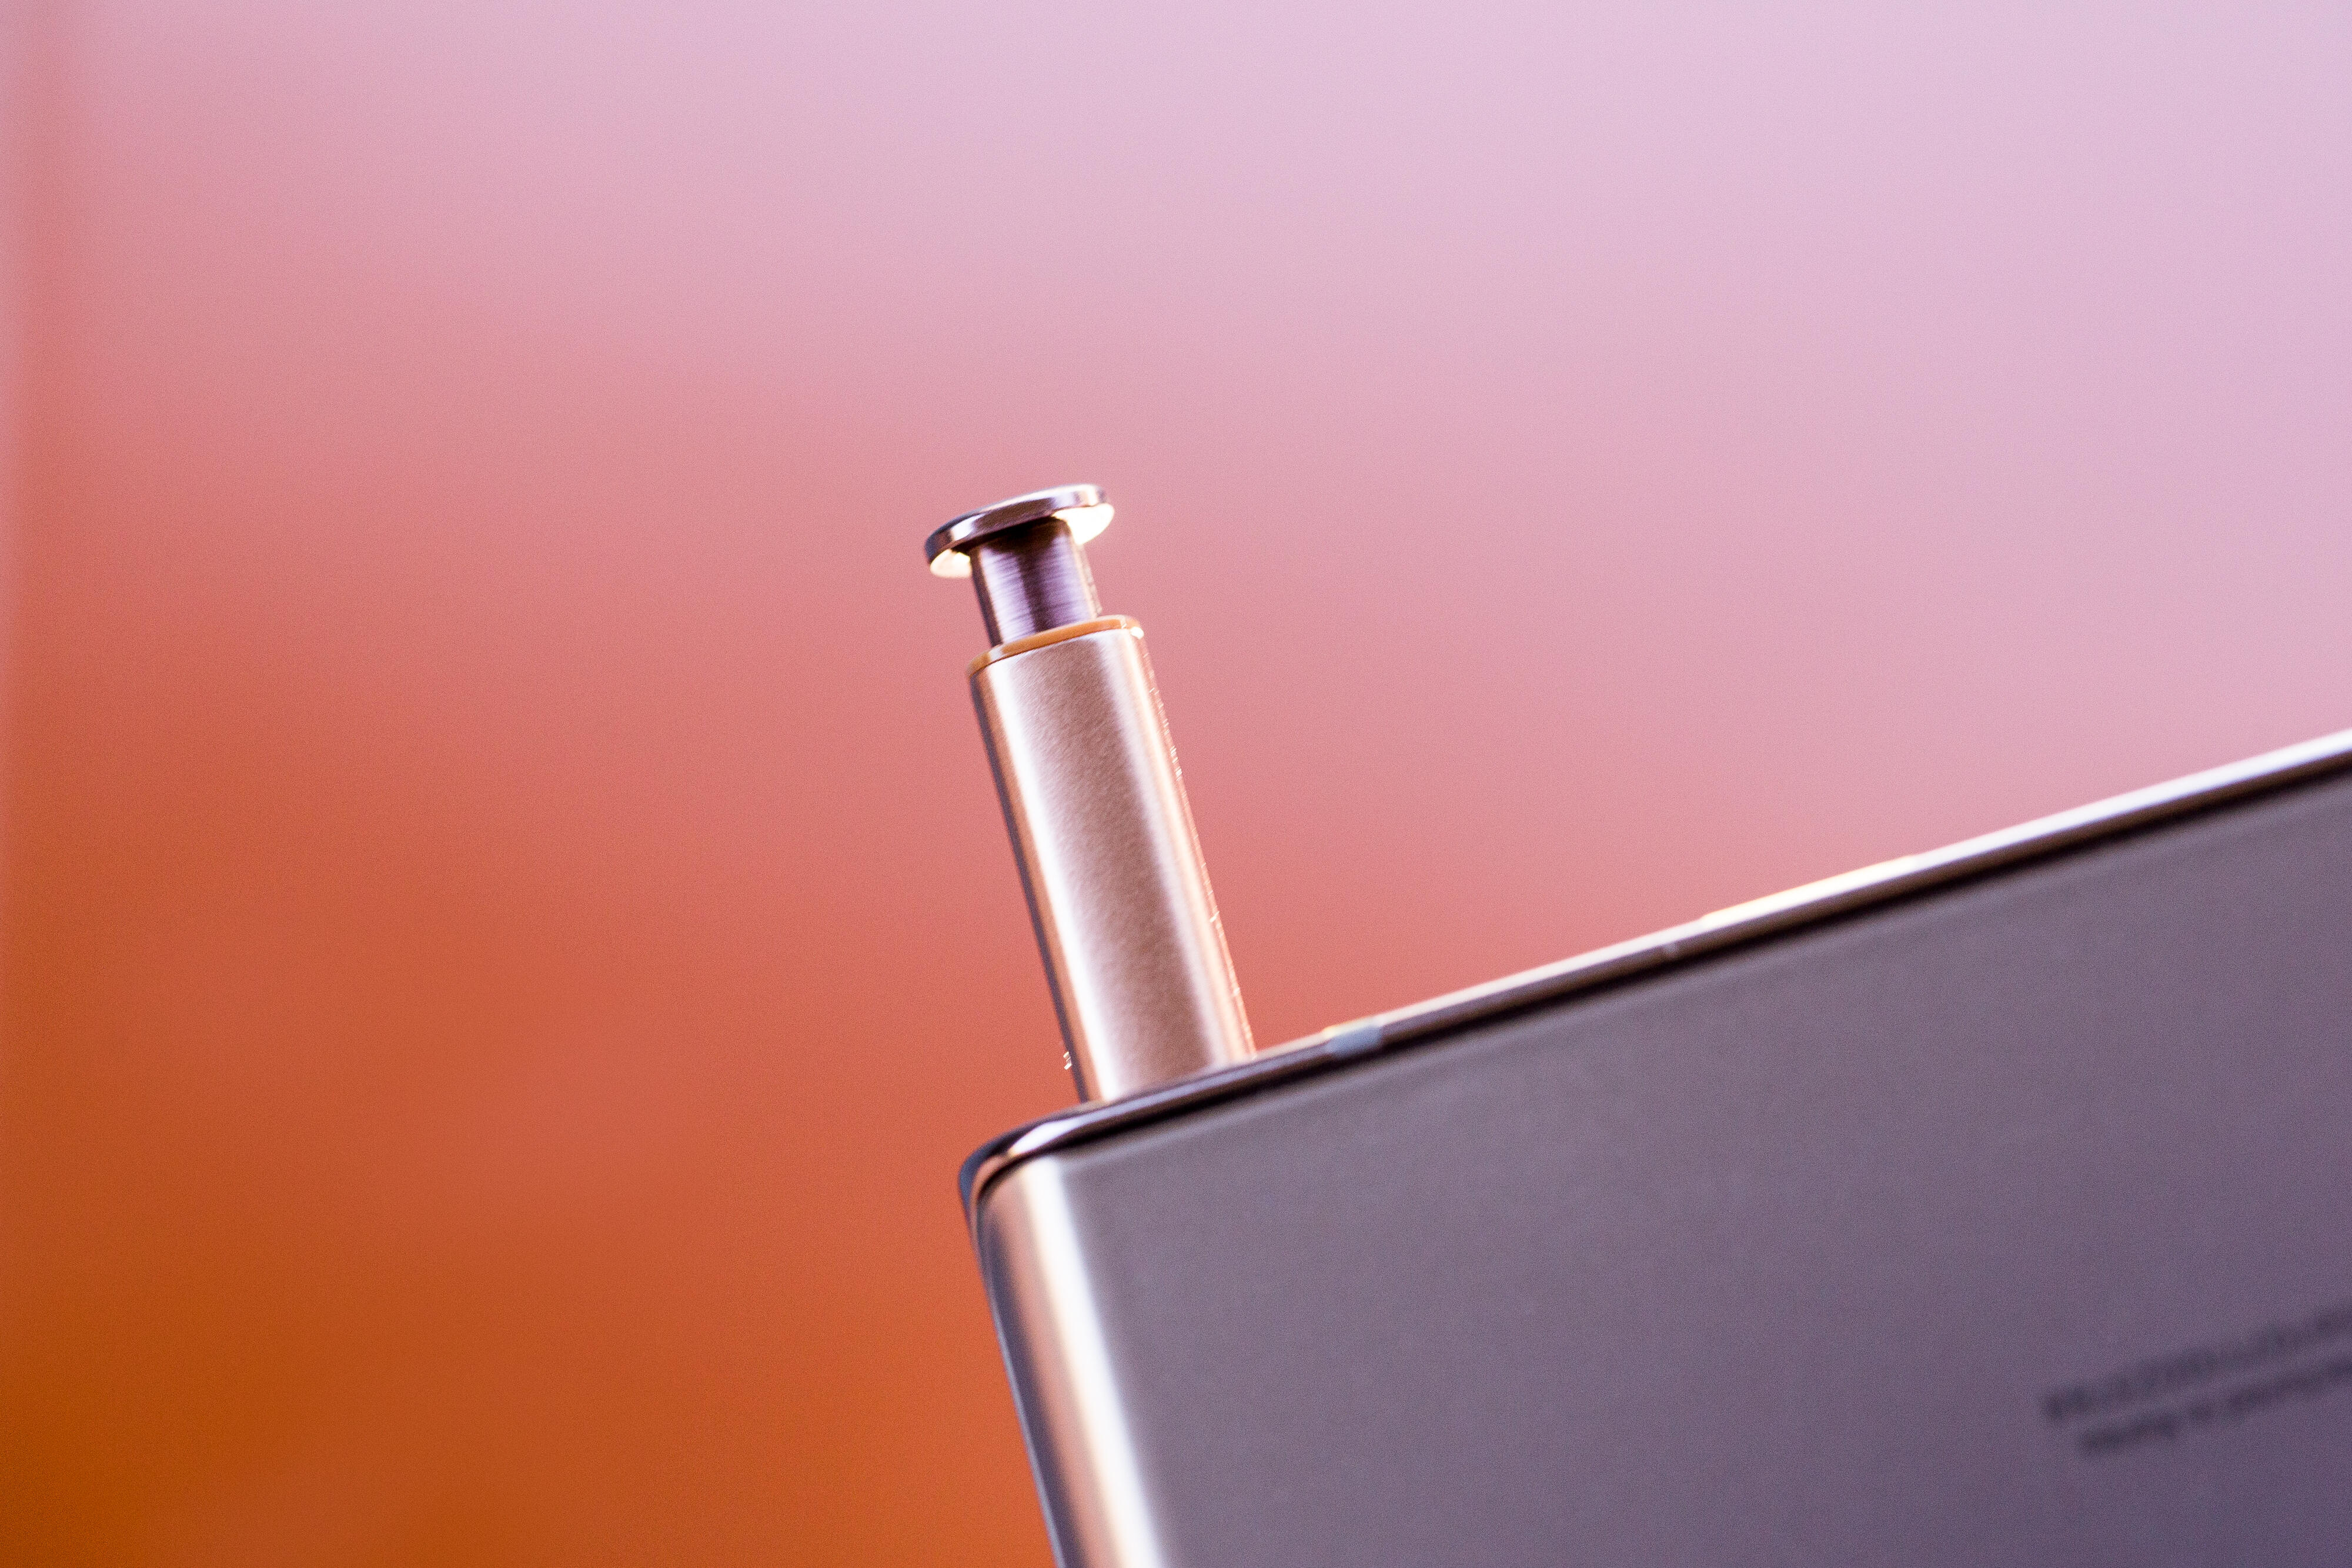 Samsung gave the Note 20 and Note 20 Ultra new stylus tricks. Here's how they work